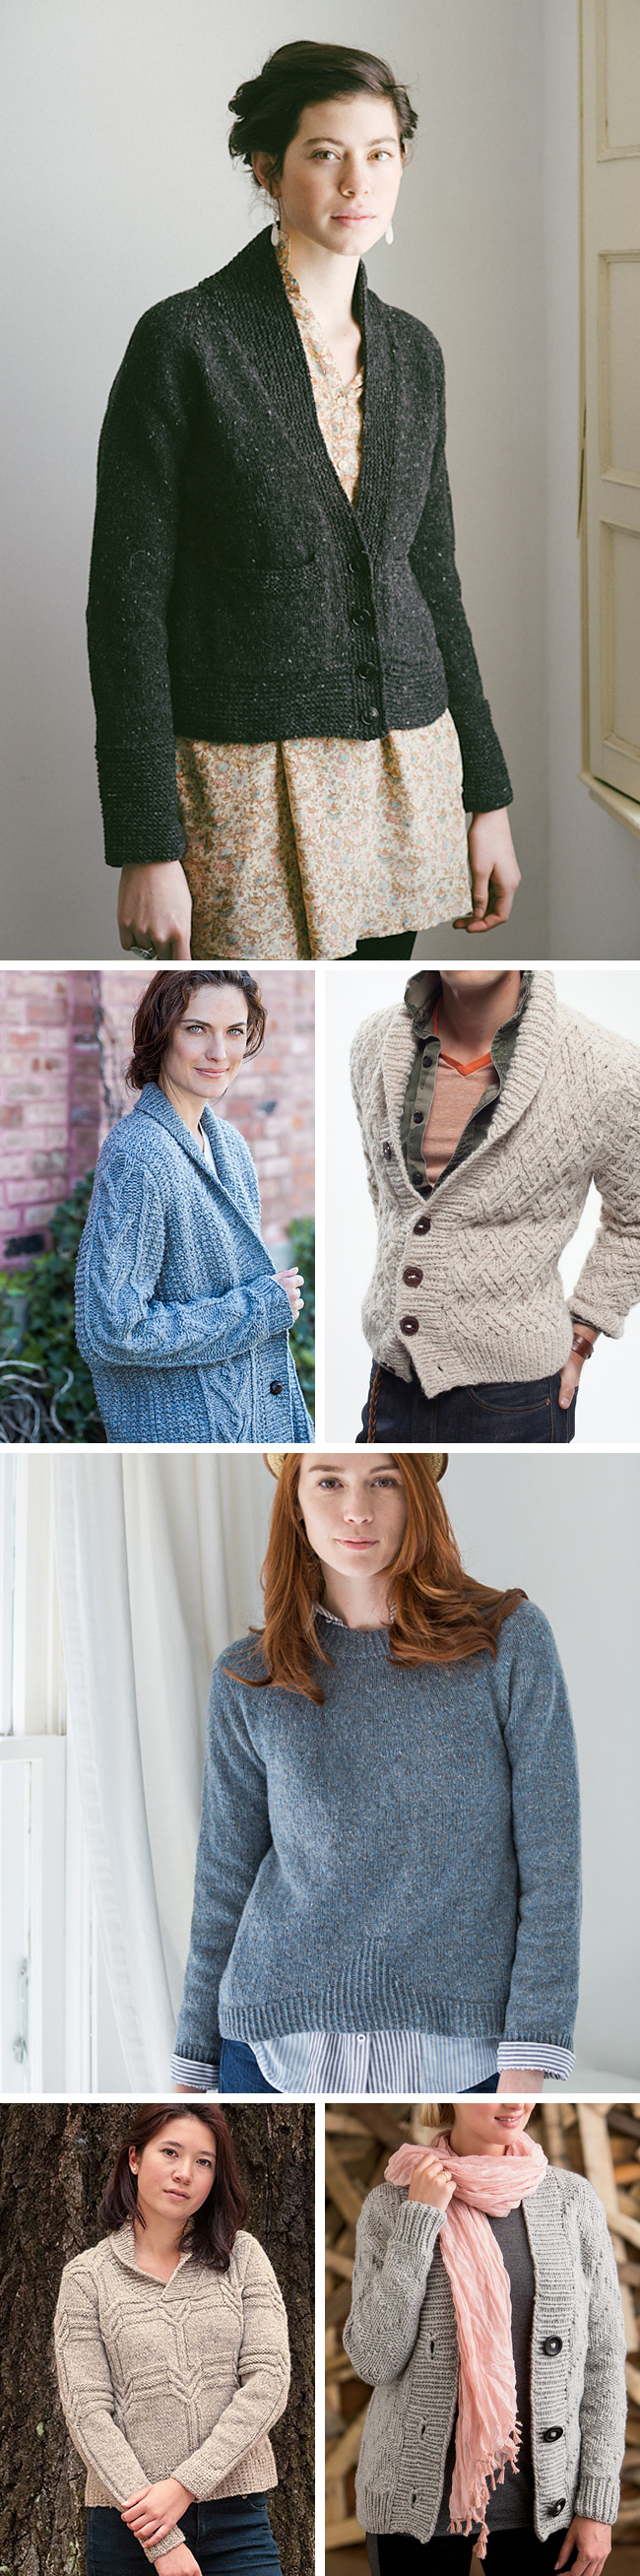 Winter wardrobe fix, part 2: Quick(er) sweaters